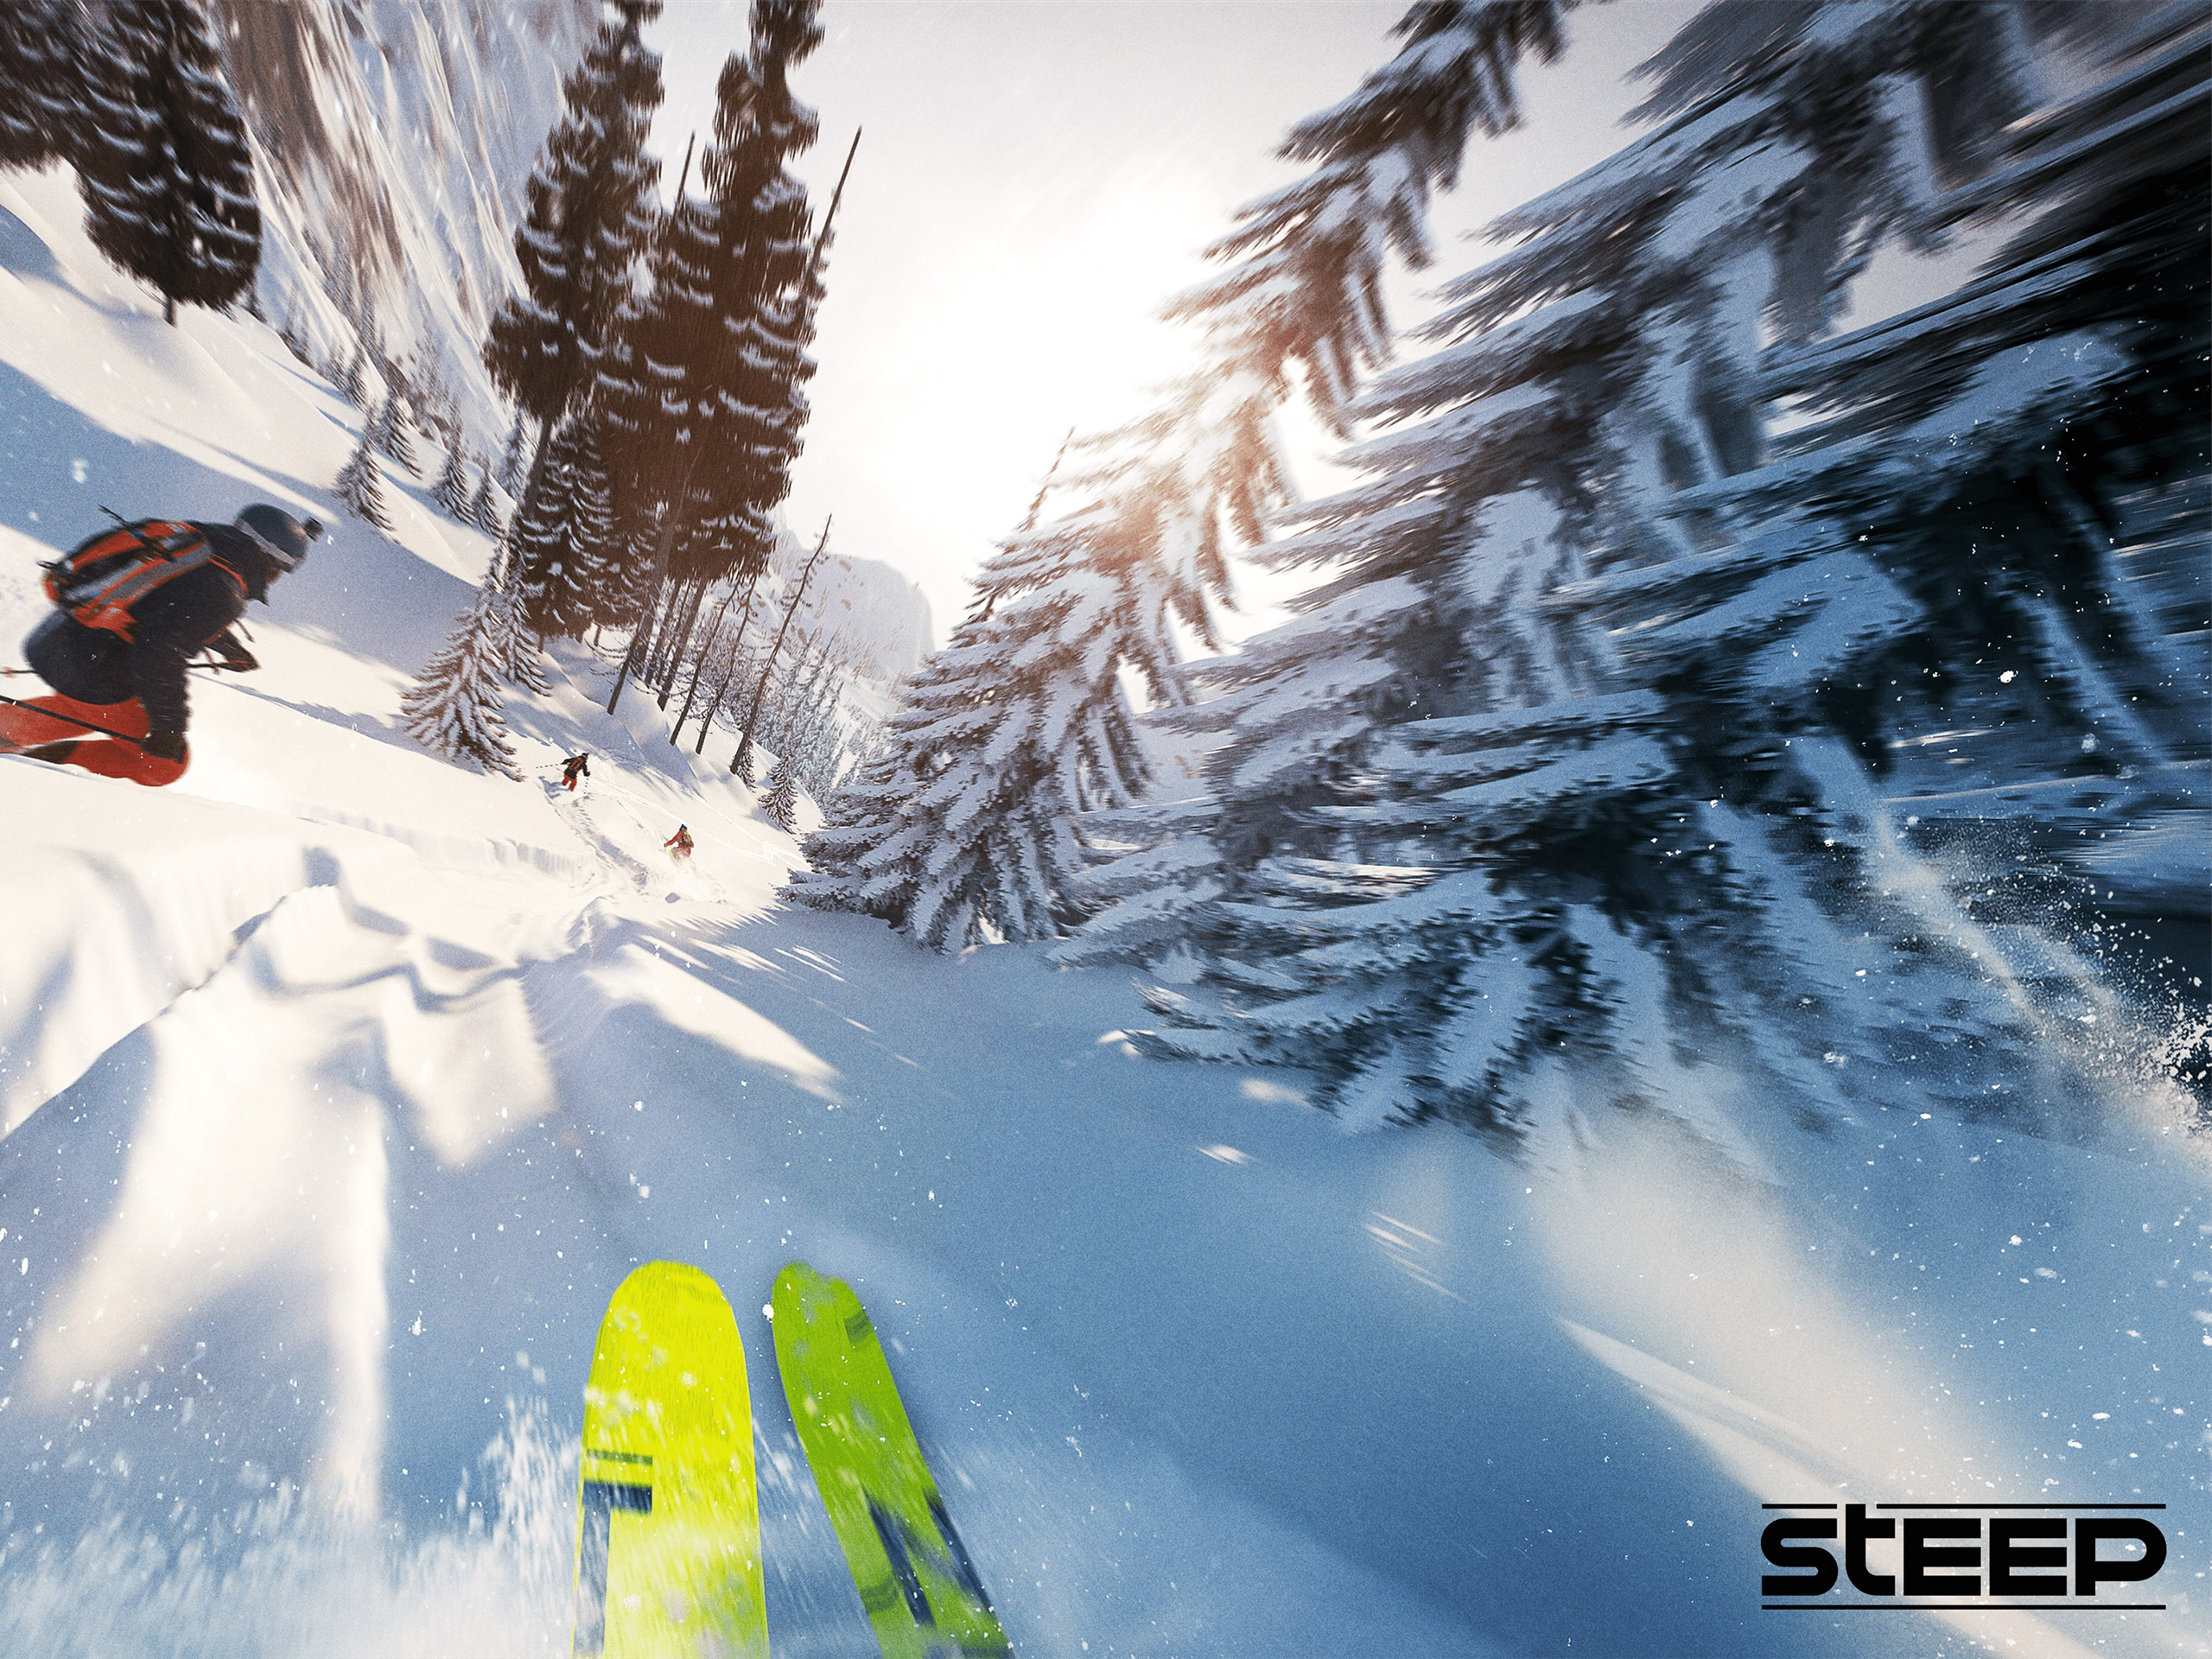 Ski competition Steep Game 4K - 2560x1920 wallpaper download